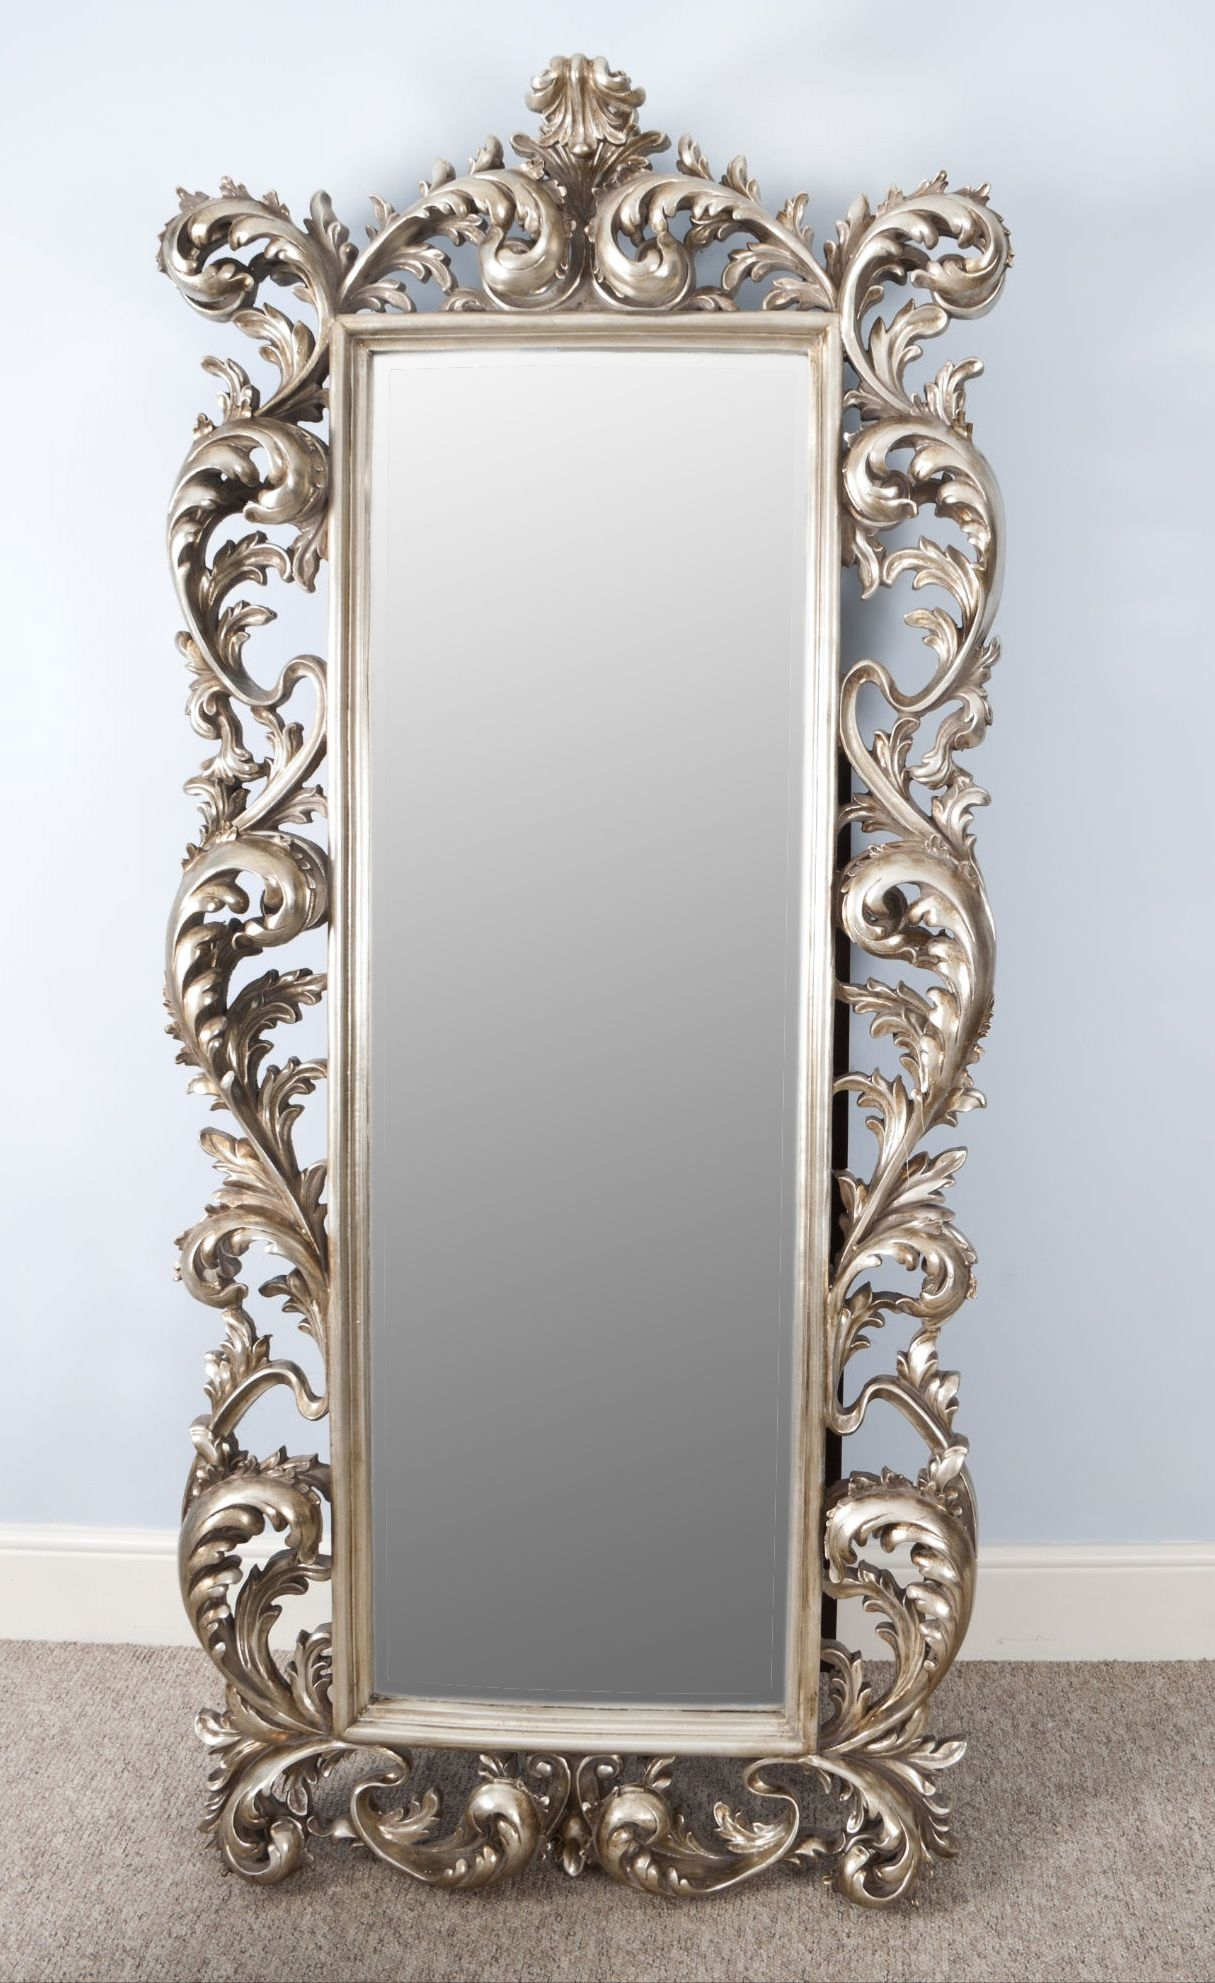 Wondrous Old Oval Mirror Antique Cheval Wall Mirror Likewise Grey With Regard To Large Vintage Mirrors For Sale (Image 14 of 15)